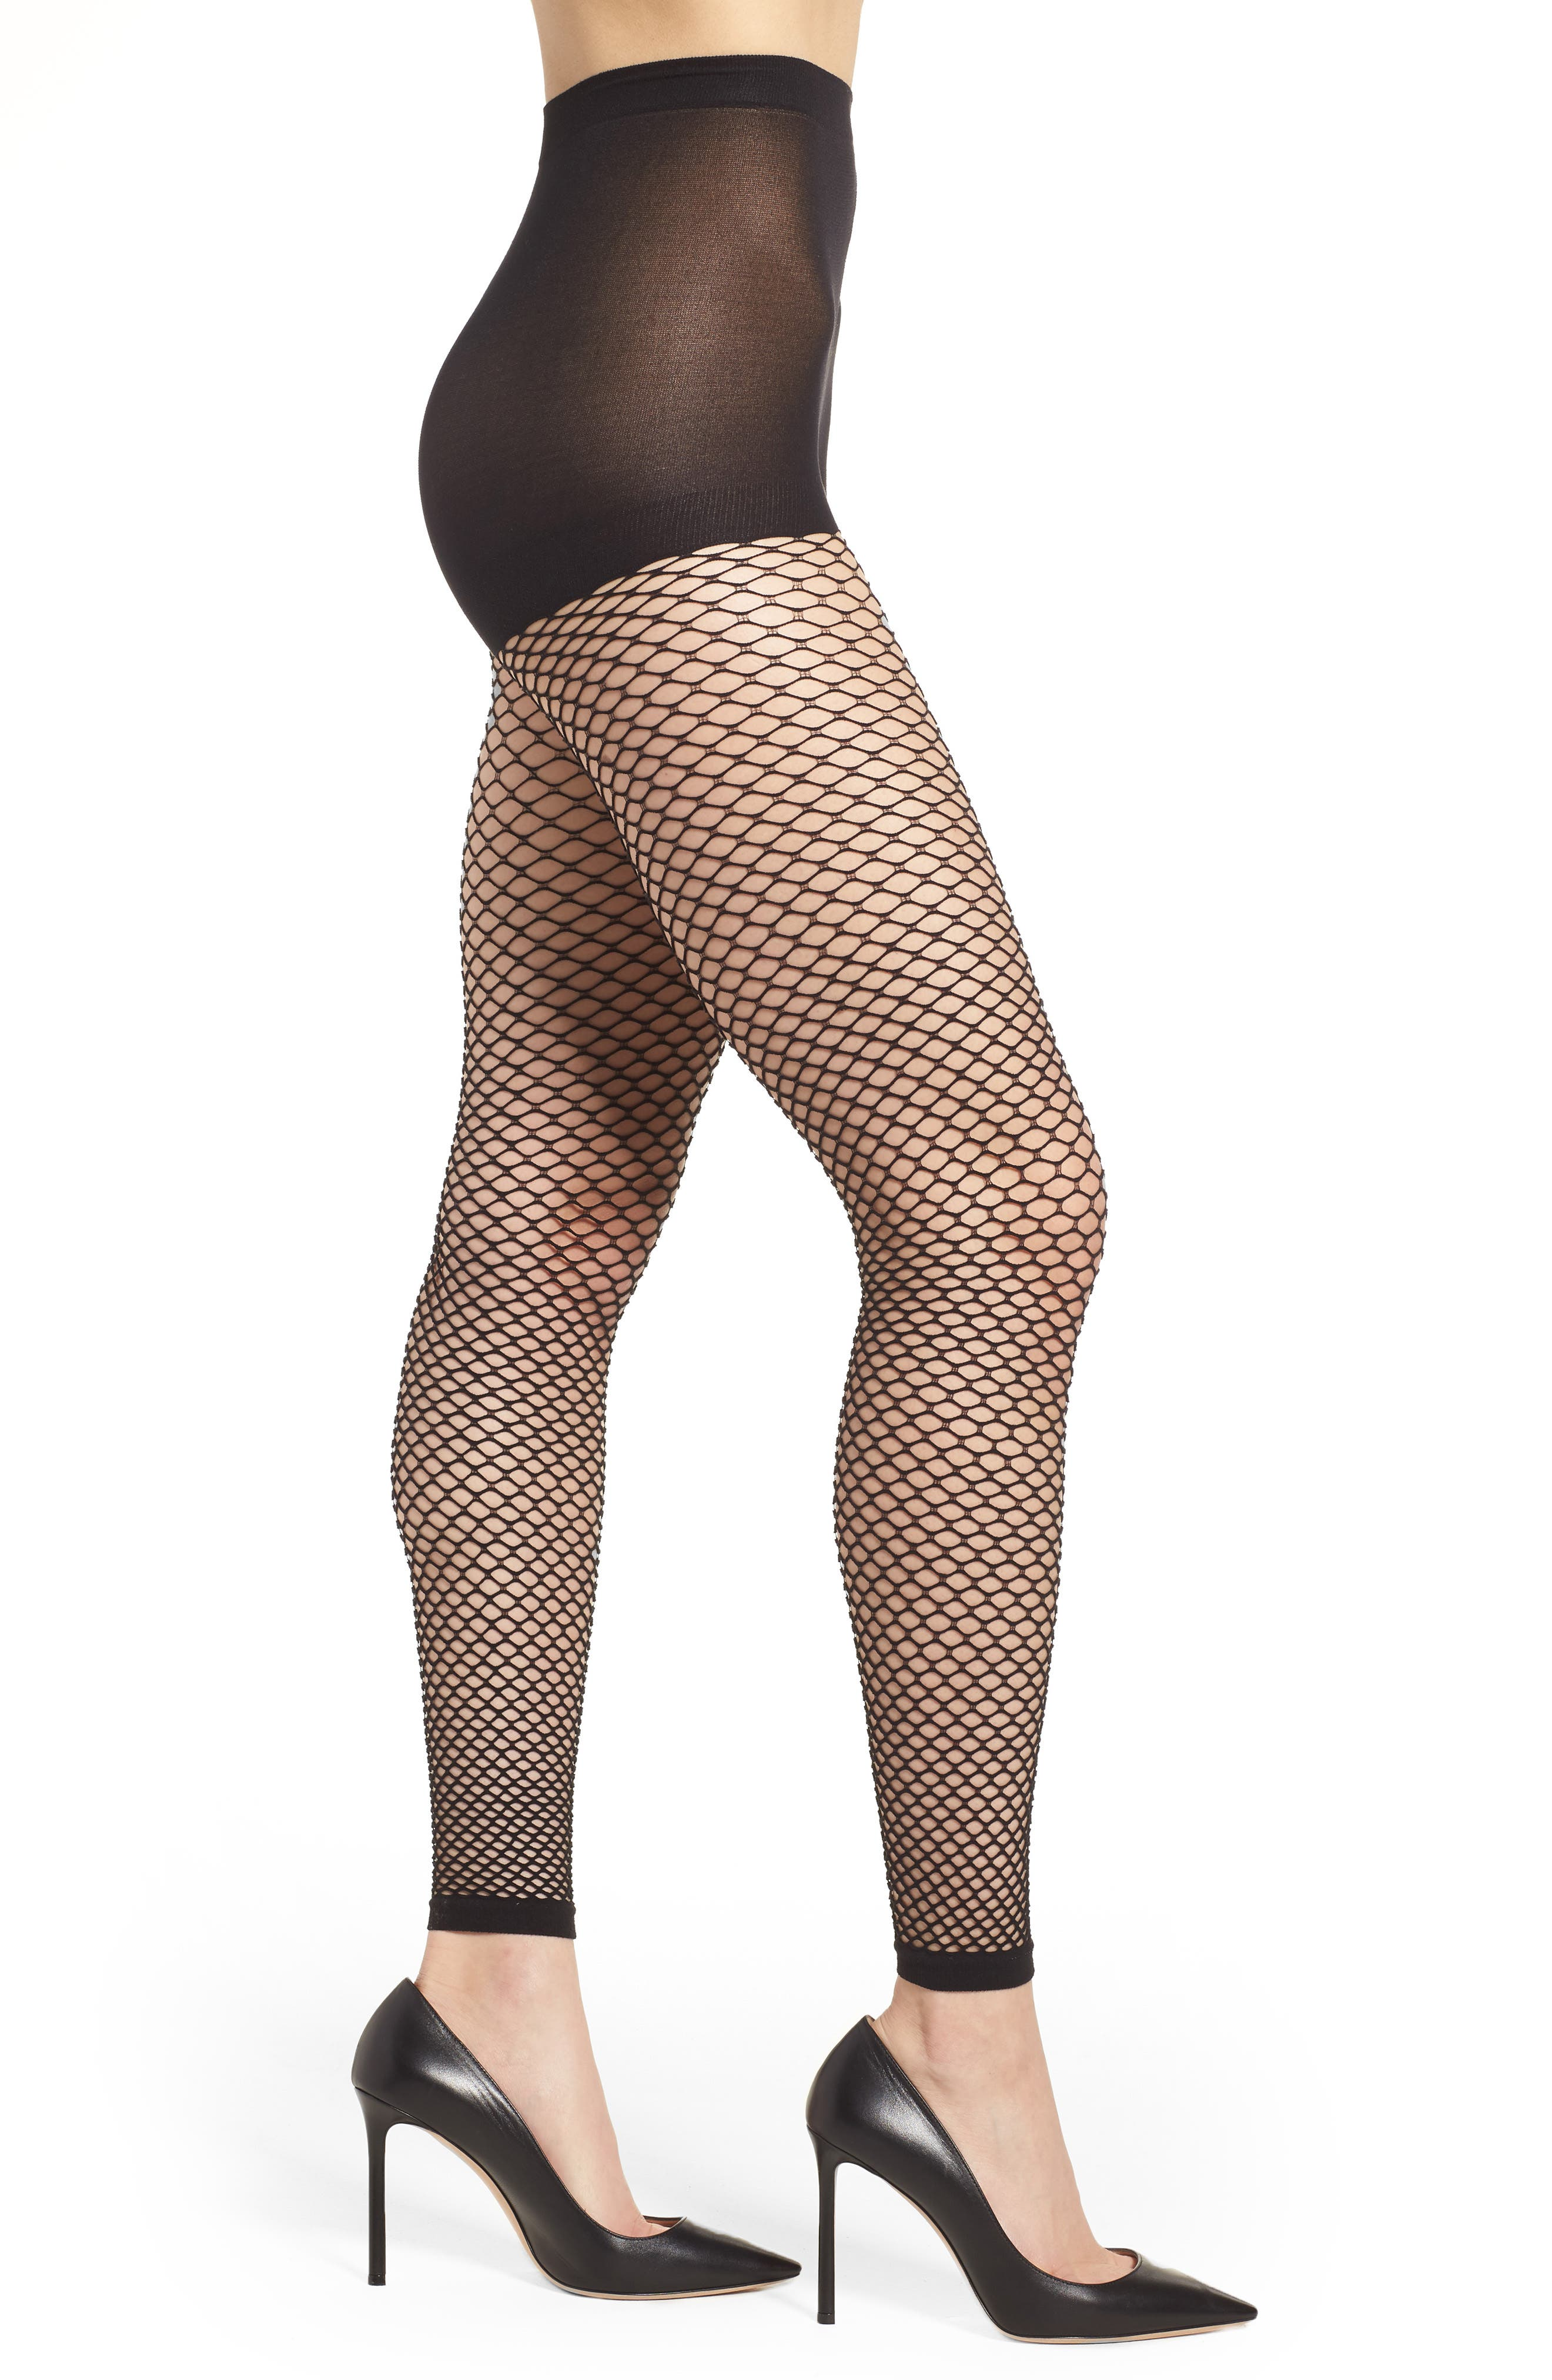 Footless Summer Fishnet Tights,                         Main,                         color, 001